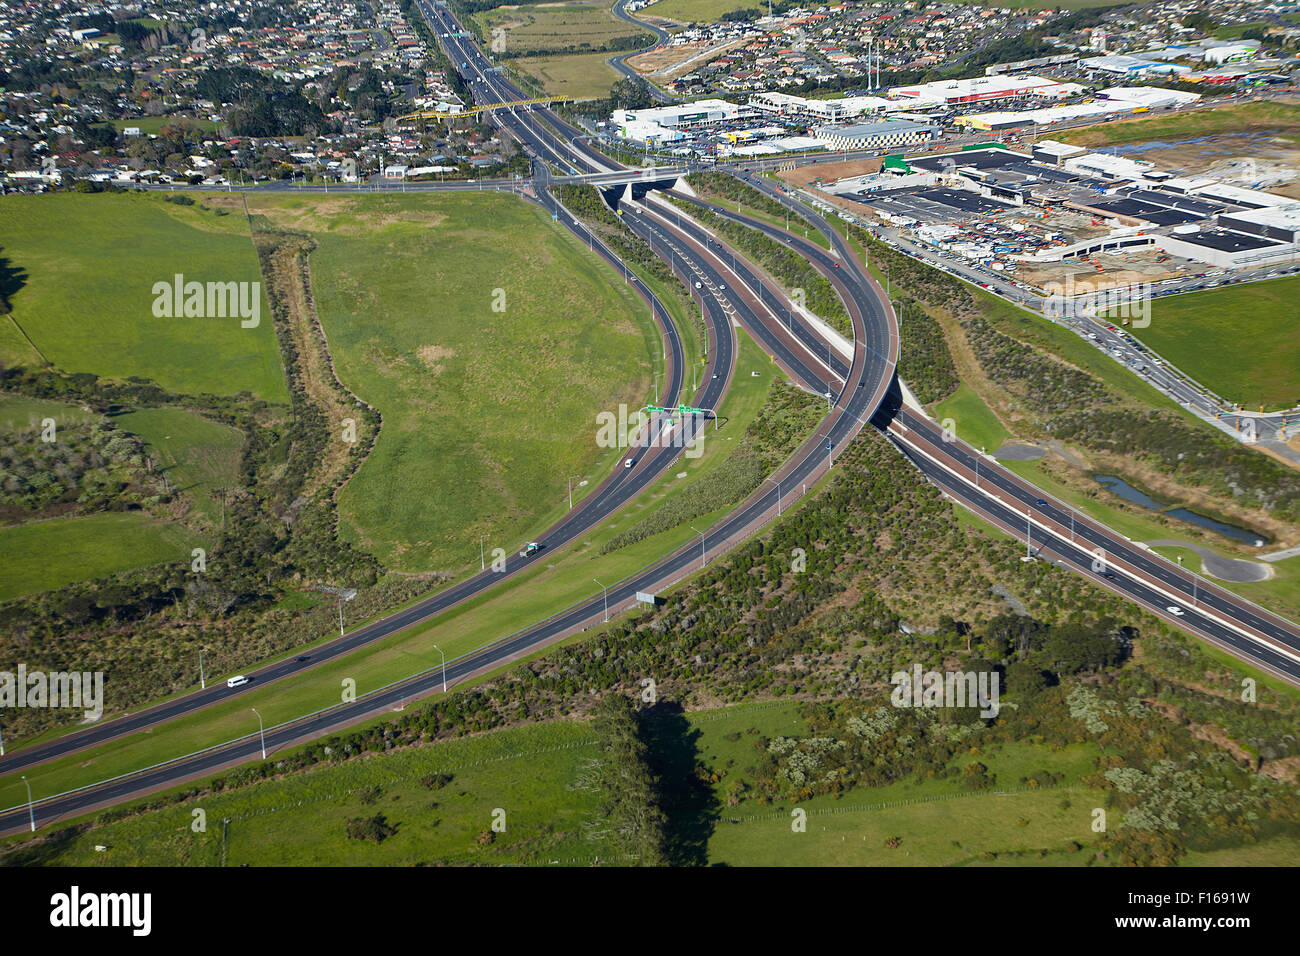 Upper Harbour Motorway, and Westgate Shopping Centre, Massey, Auckland, North Island, New Zealand - aerial - Stock Image